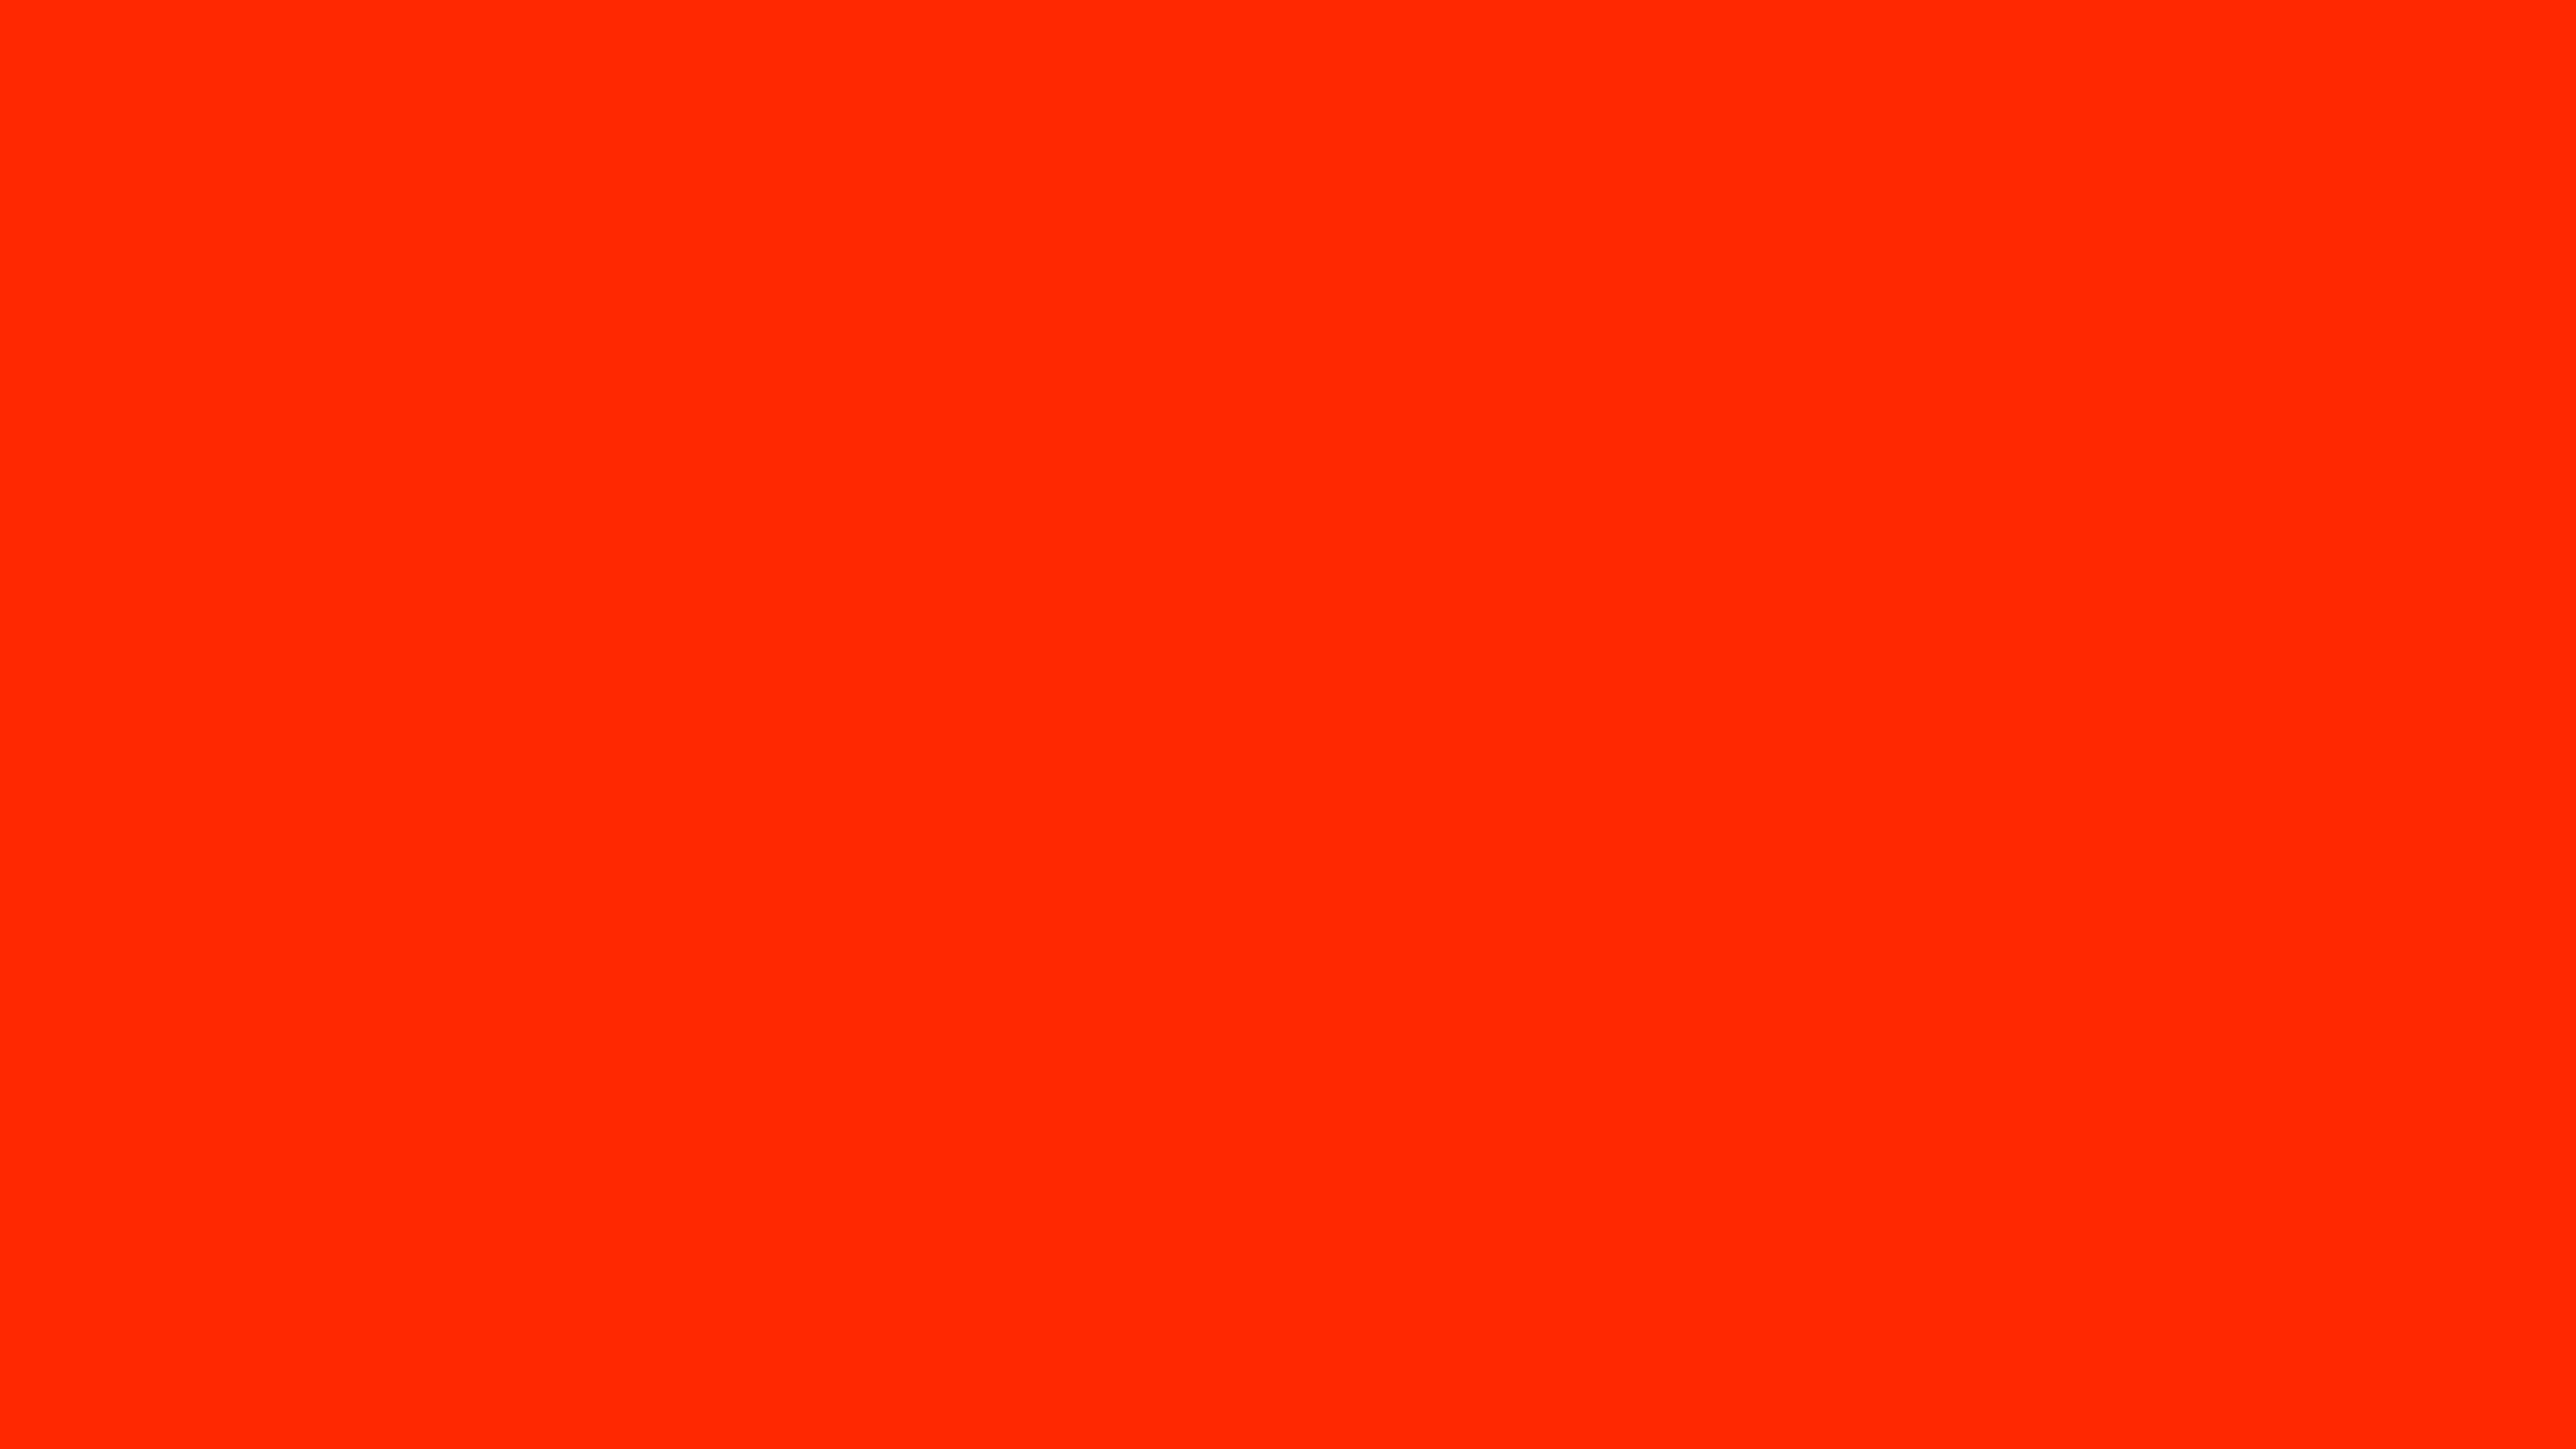 5120x2880 Ferrari Red Solid Color Background